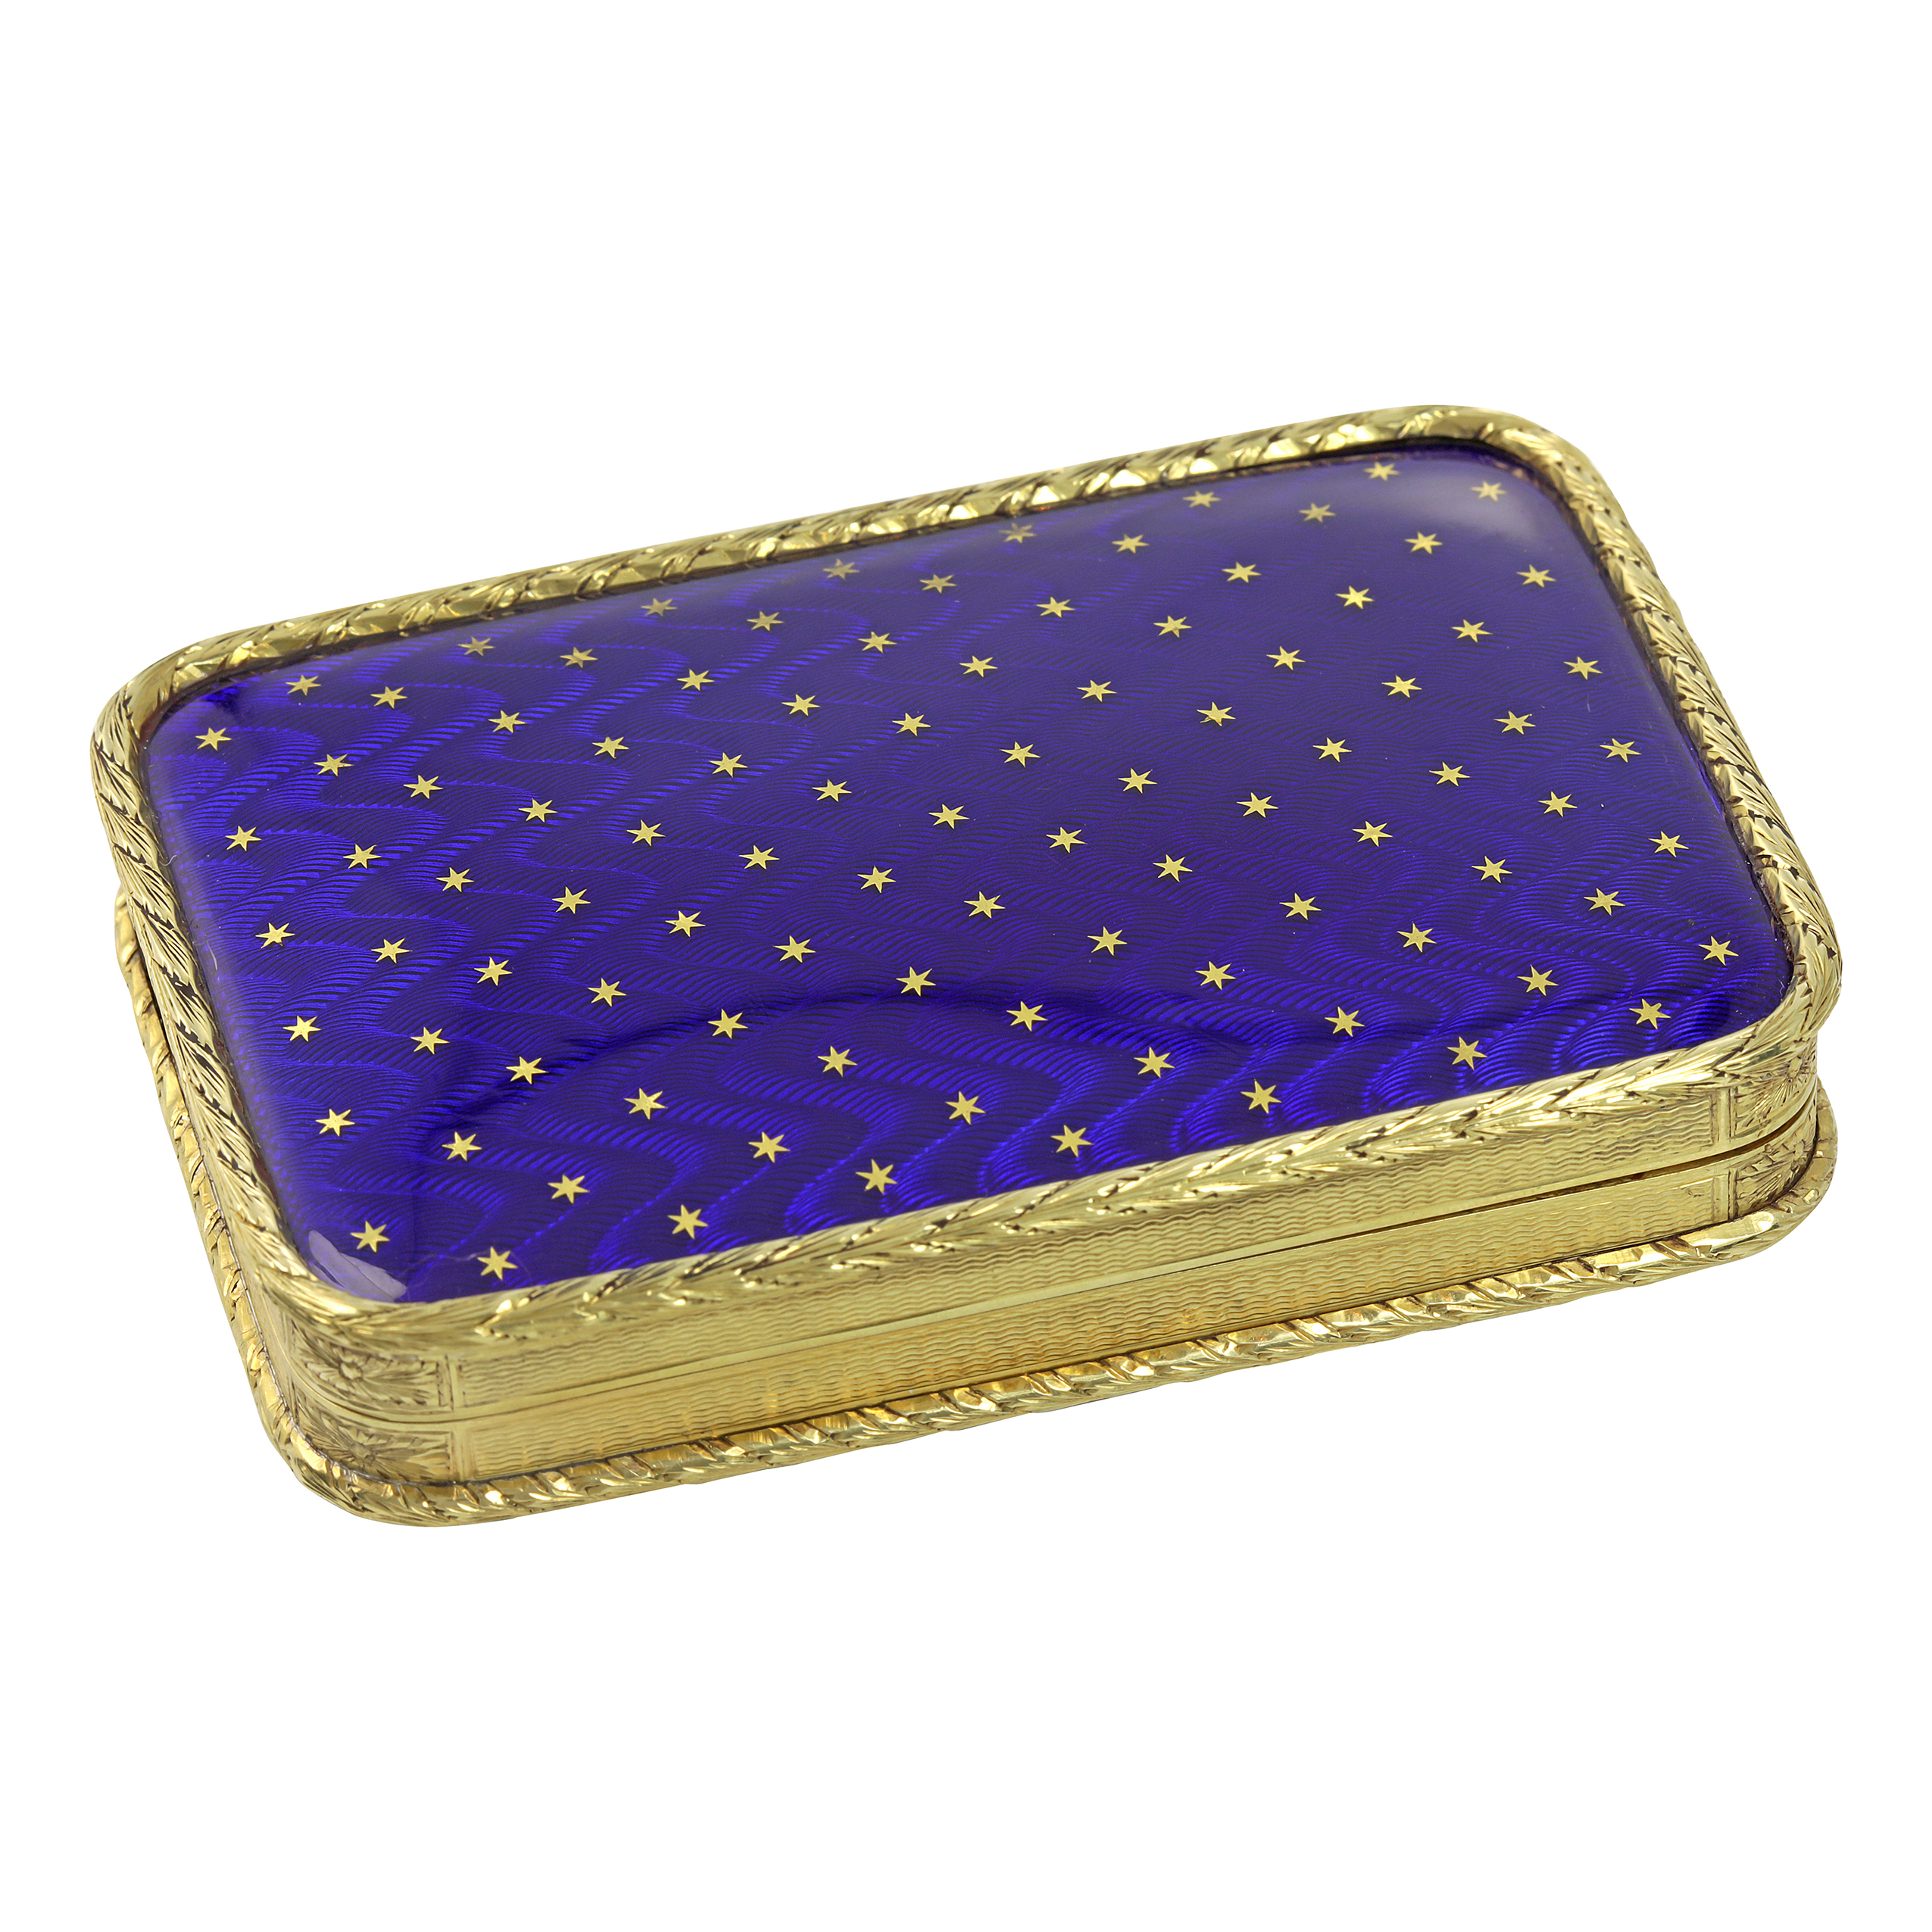 Los 304 - AN ANTIQUE ENAMEL GOLD BOX in high carat yellow gold, the rounded rectangular body with engine